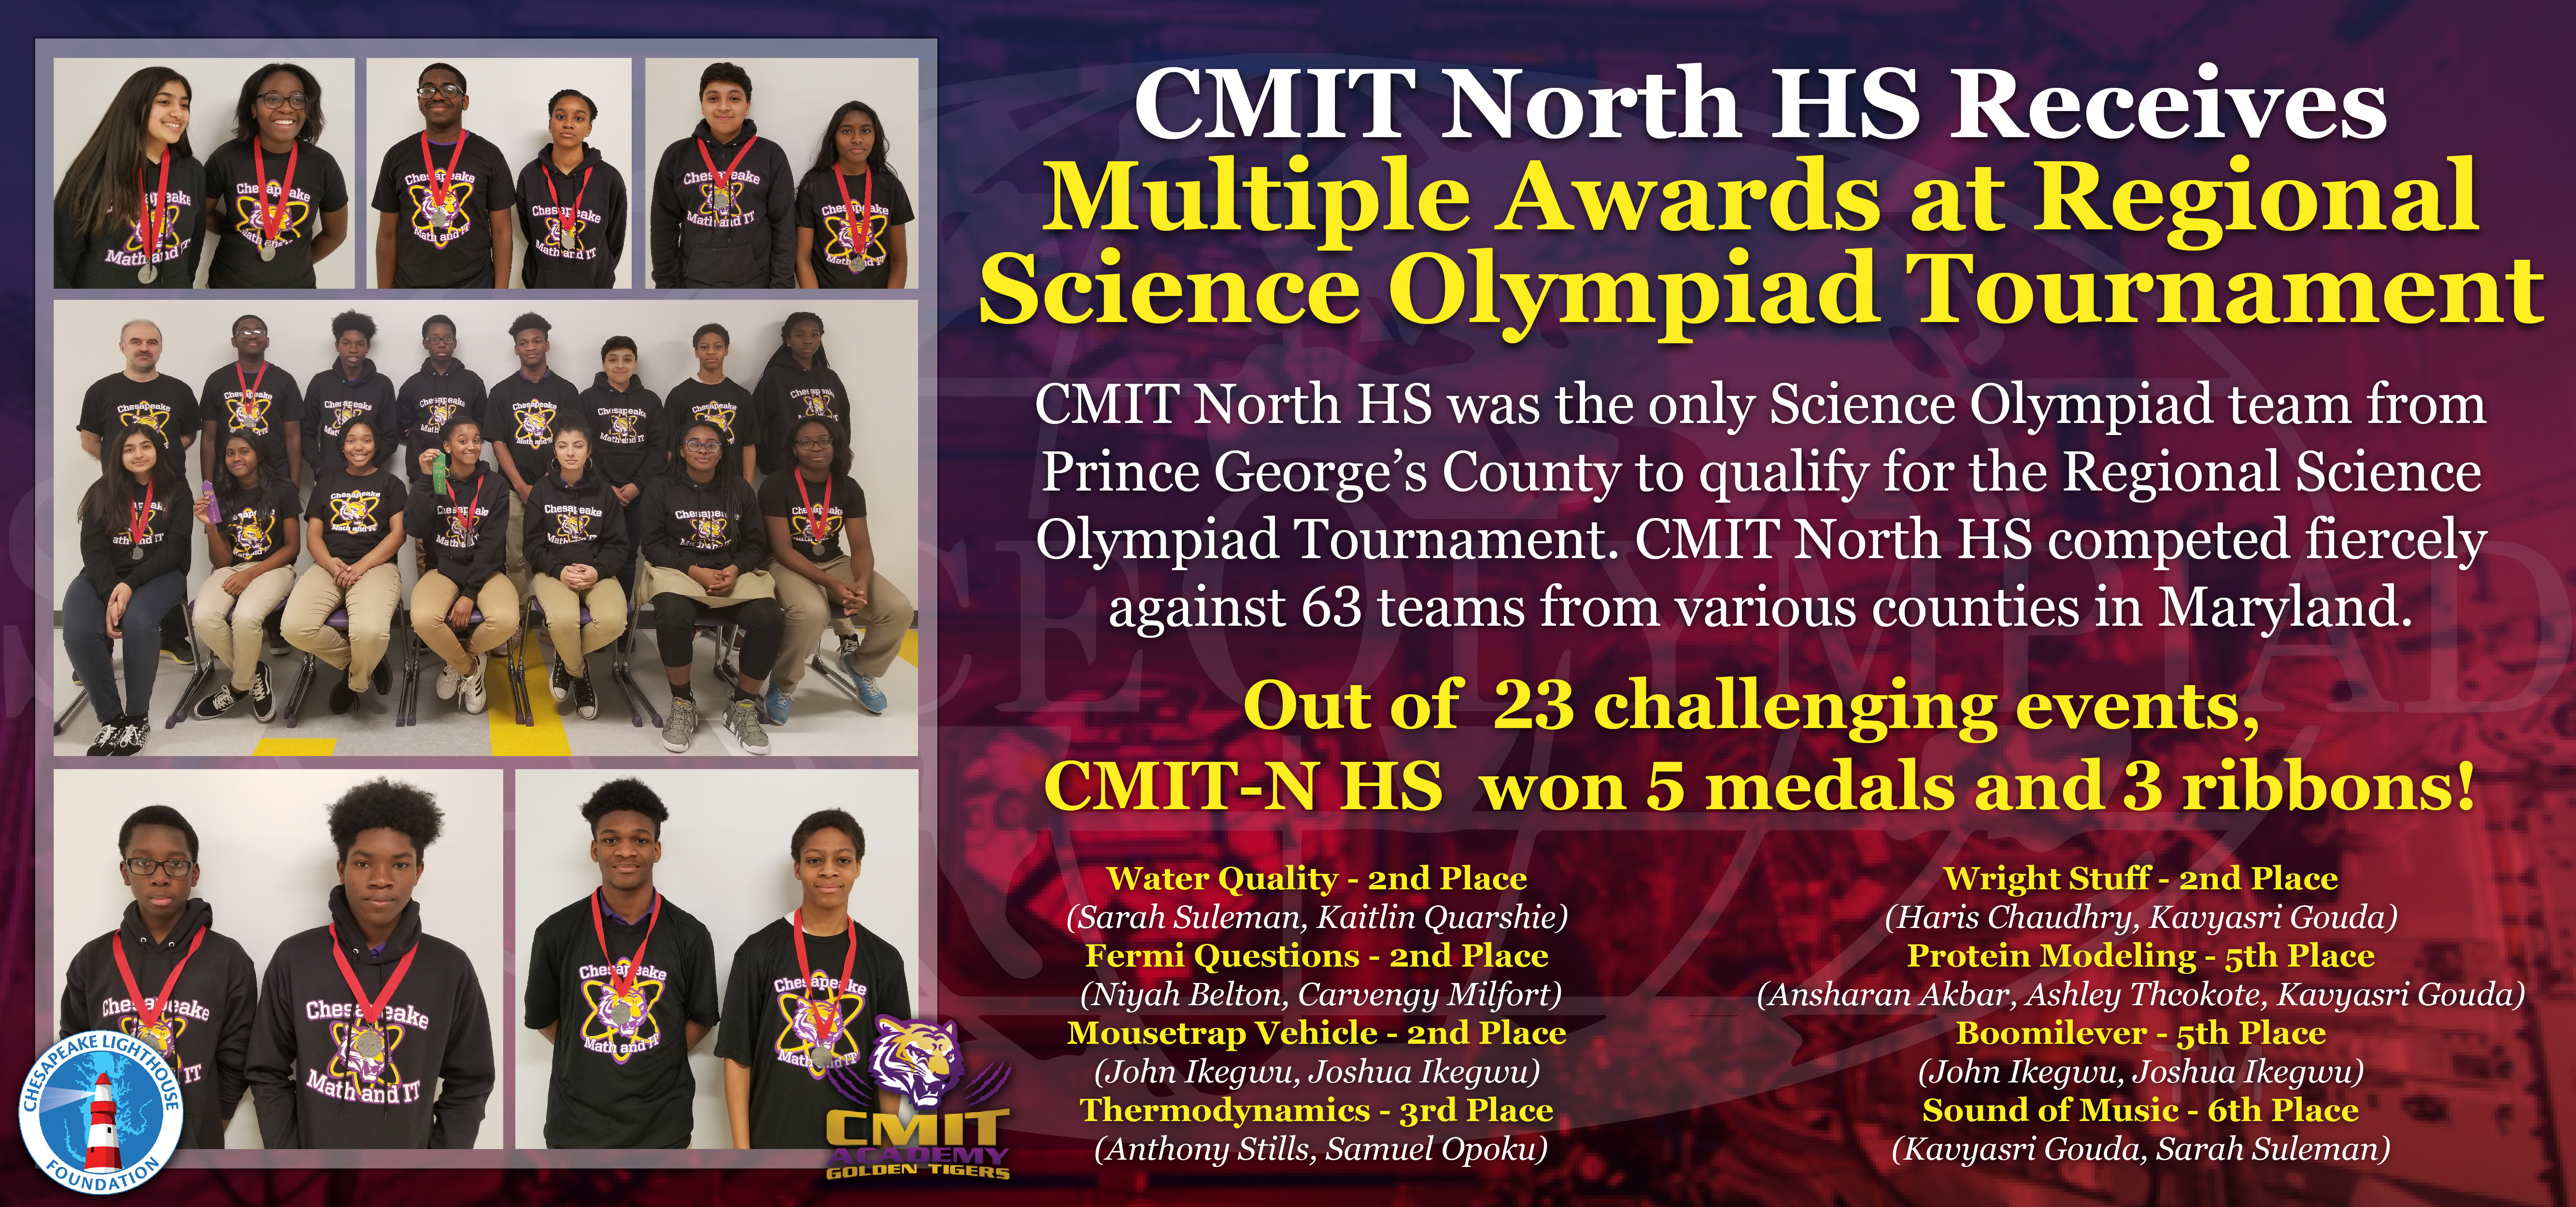 CMIT North HS Honored at Regional Science Olympiad Tournament